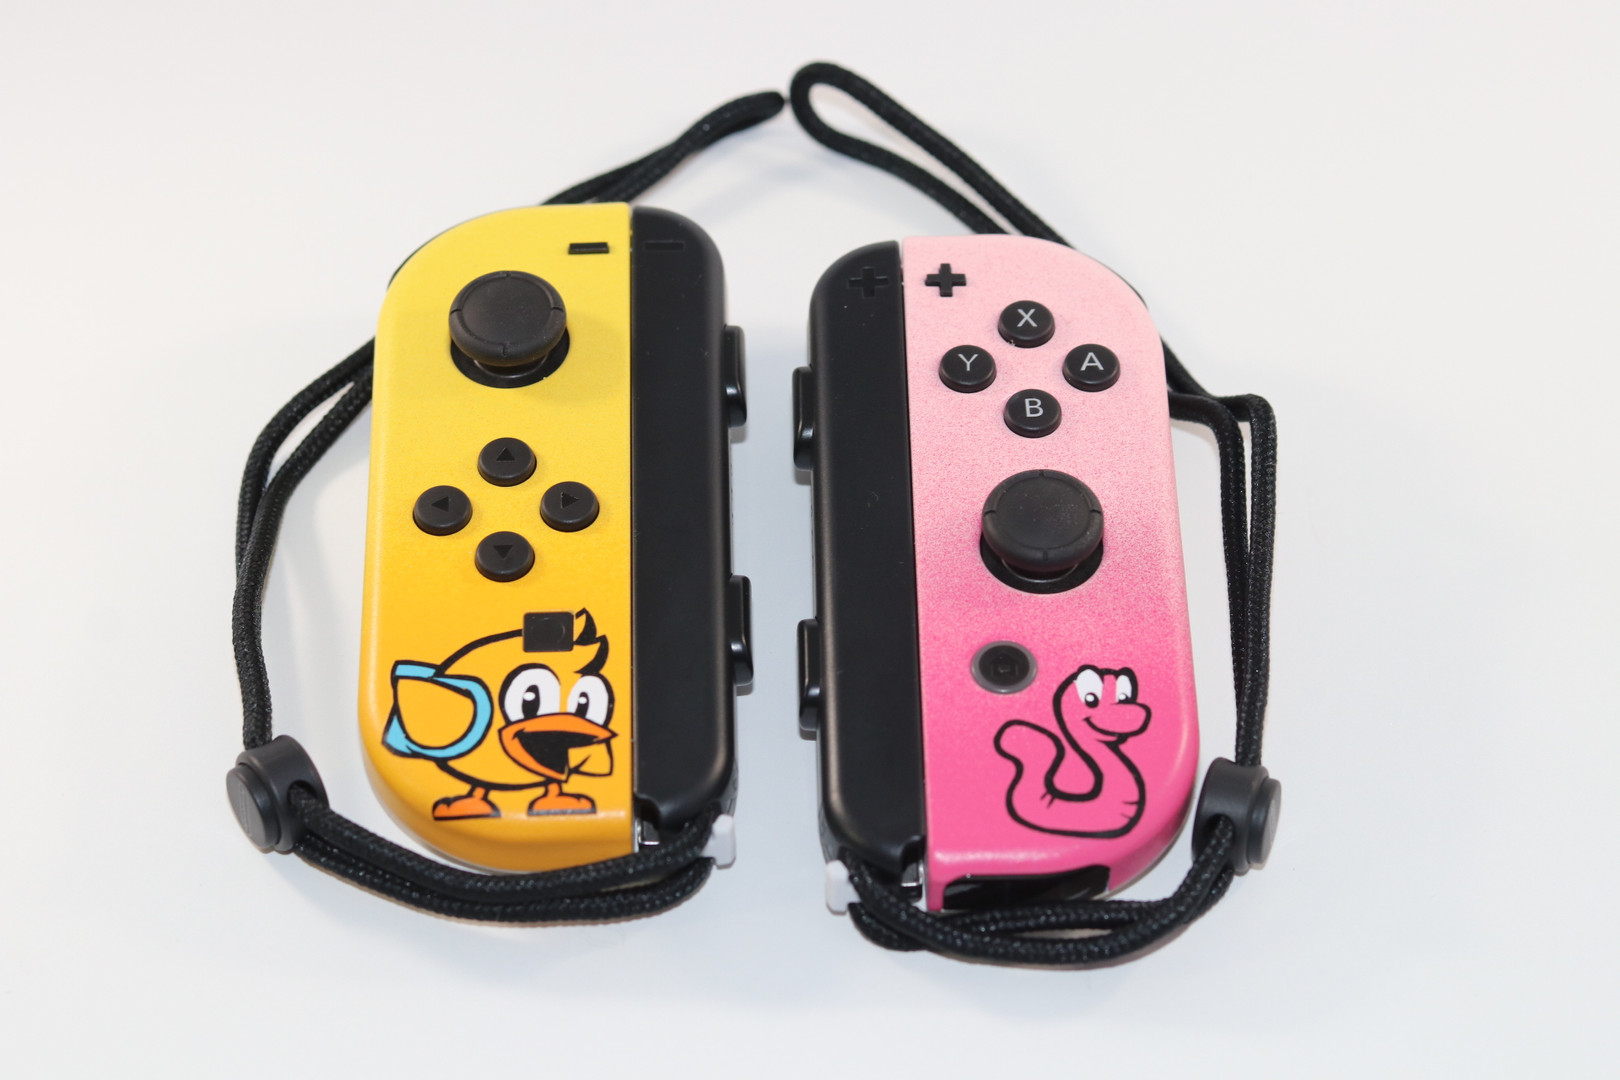 Chicken Wiggle Workshop Joy-cons